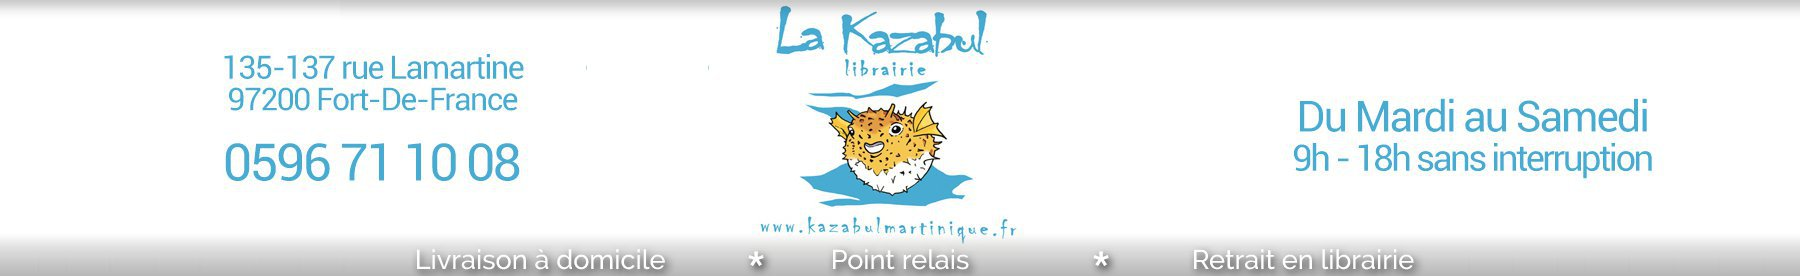 La Kazabul Martinique